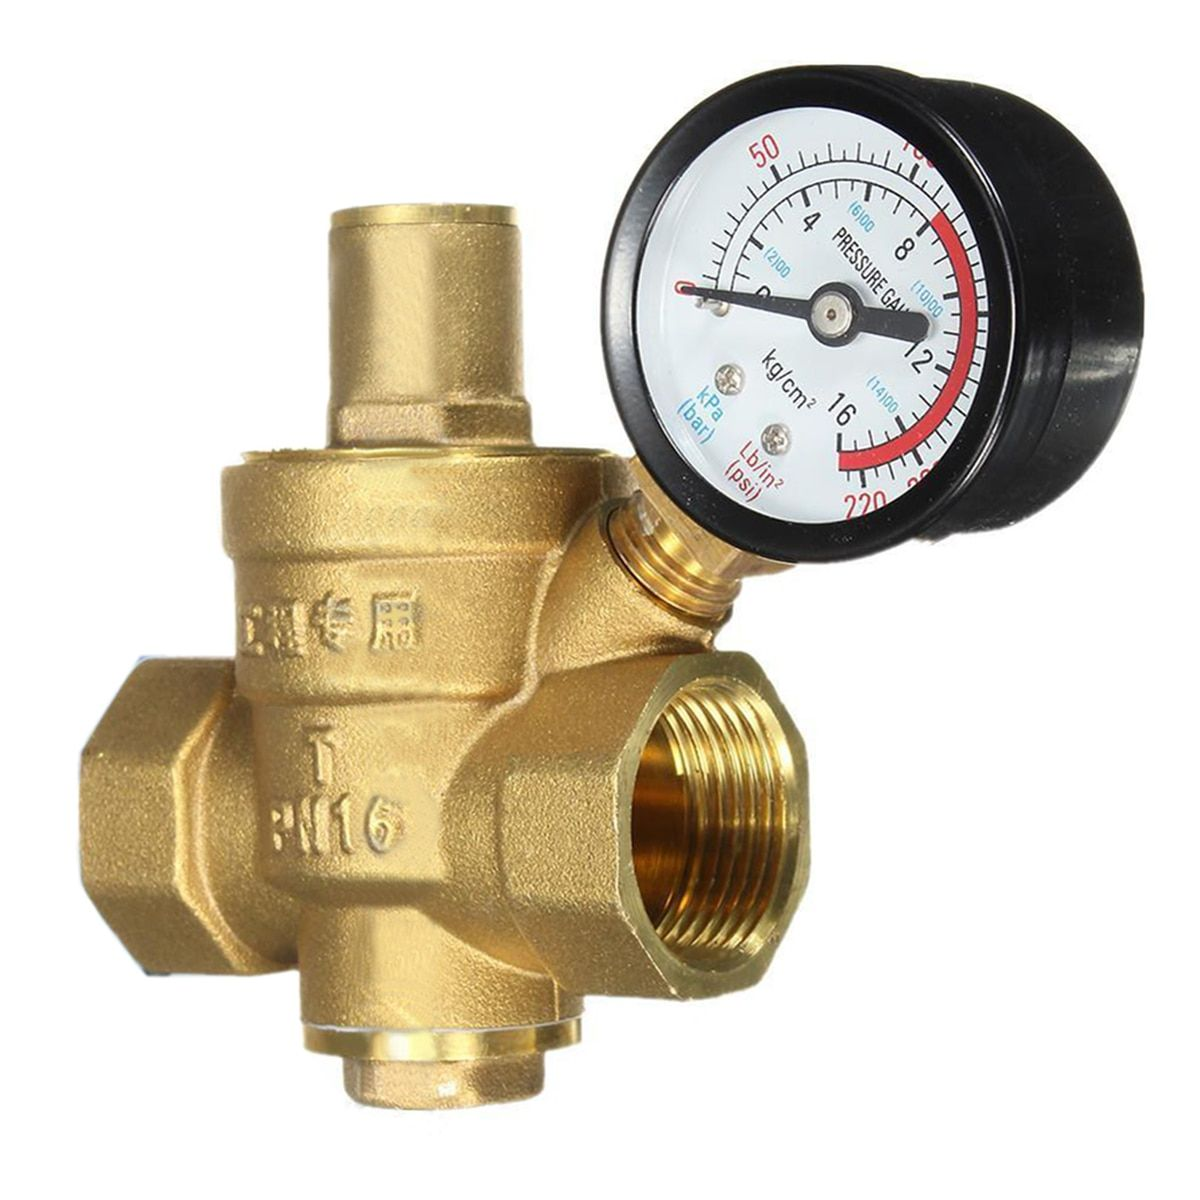 DN20 3/4 Brass Water Pressure Reducing Maintaining Valves Regulator Mayitr Adjustable Relief Valves With Gauge Meter 85*63mm